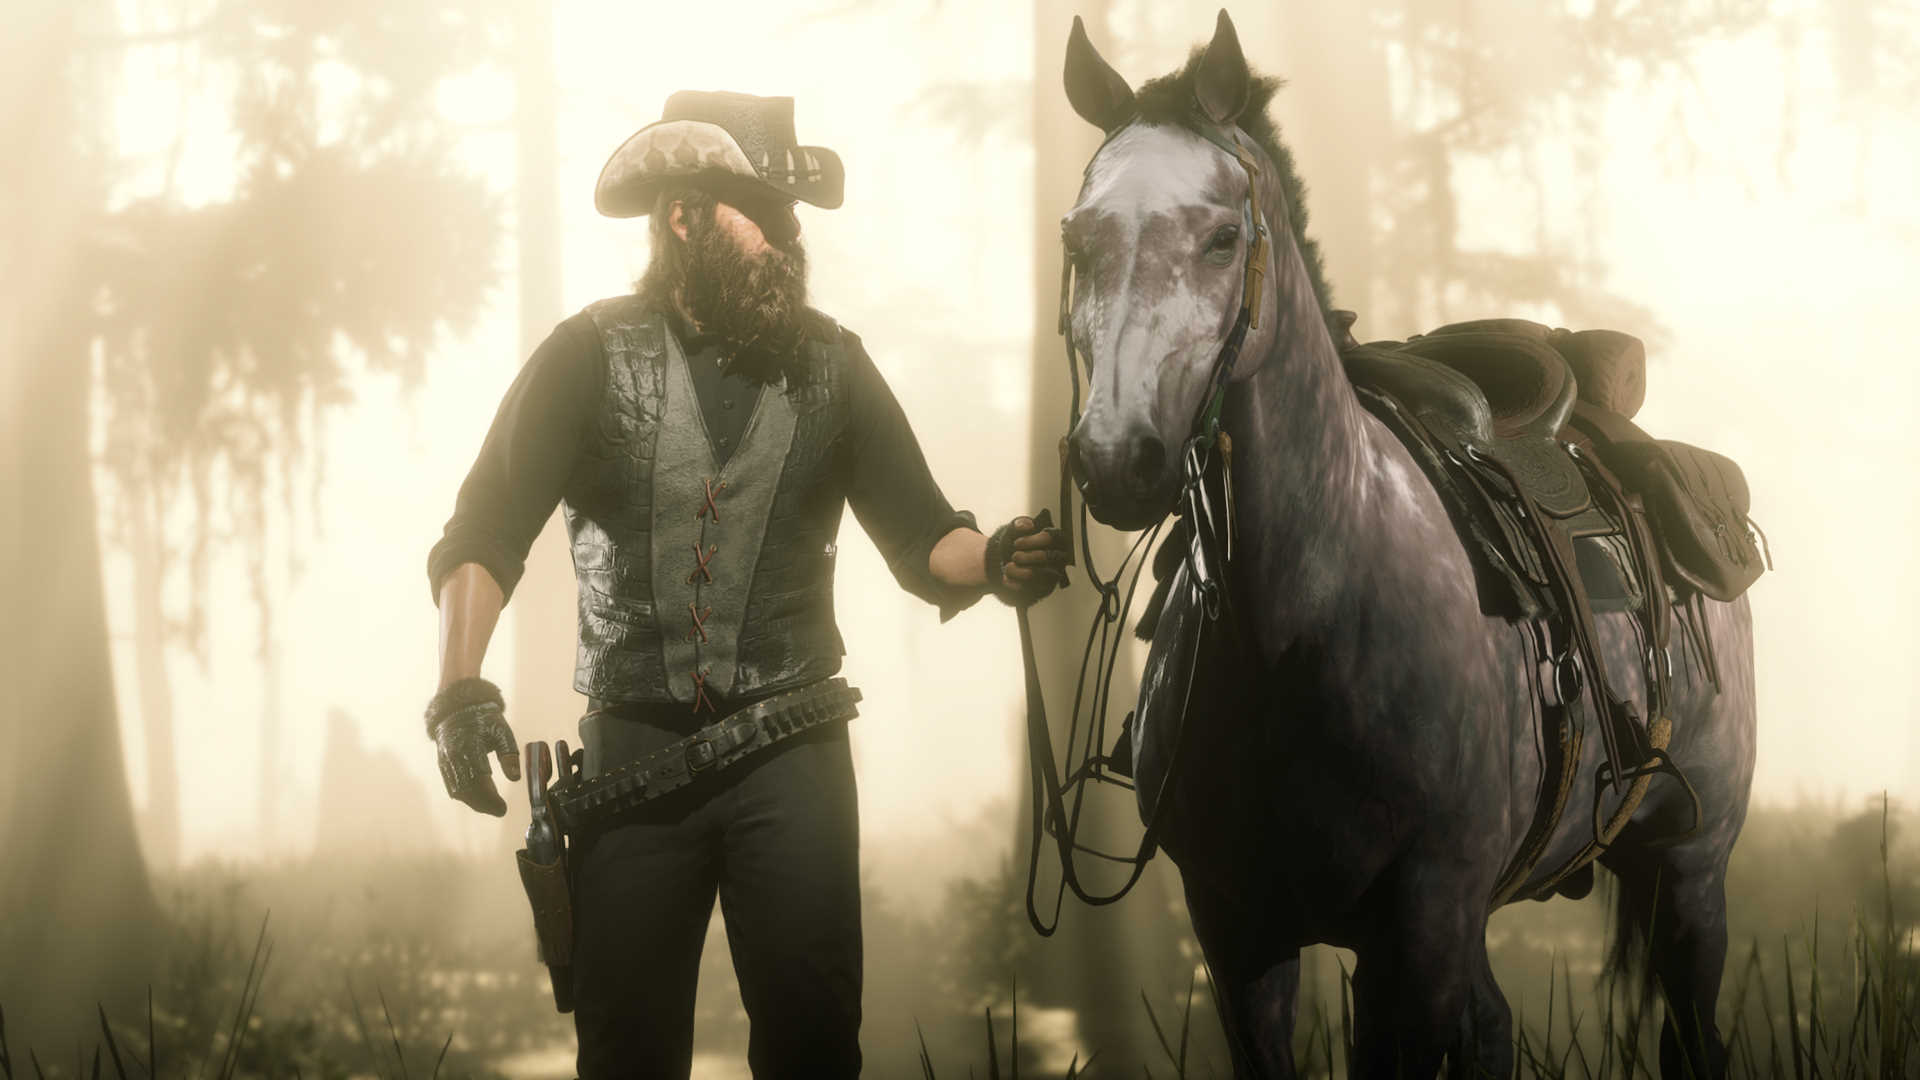 Over a third of gaming PCs can run Red Dead Redemption 2's recommended specs